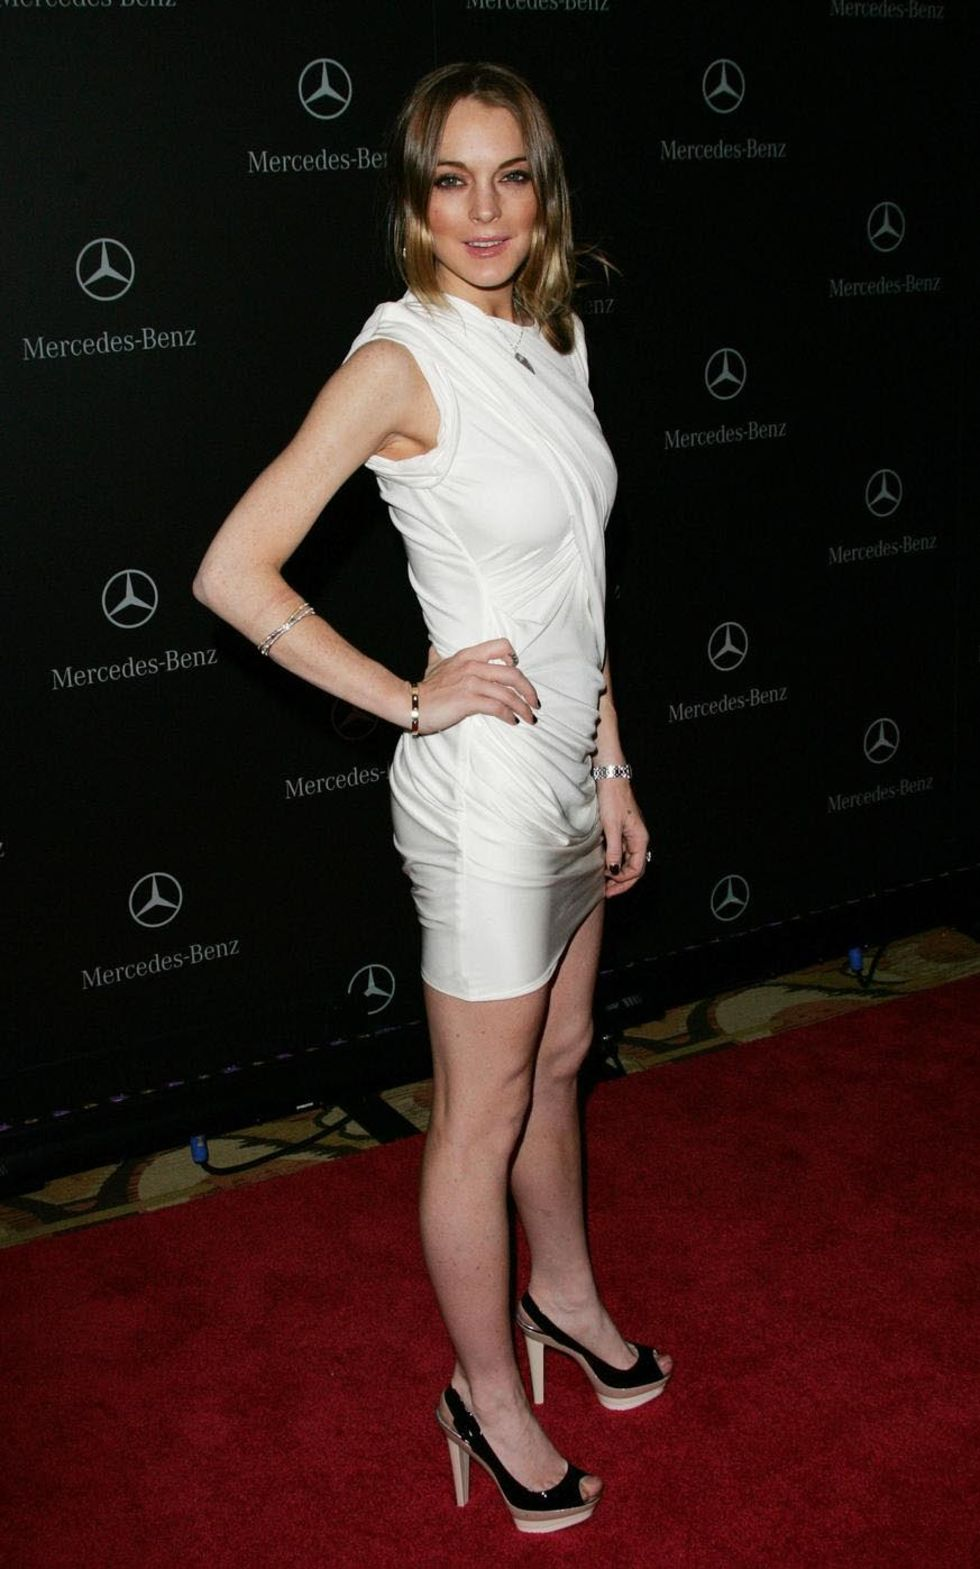 lindsay-lohan-mercedes-benz-oscar-party-in-beverly-hills-01